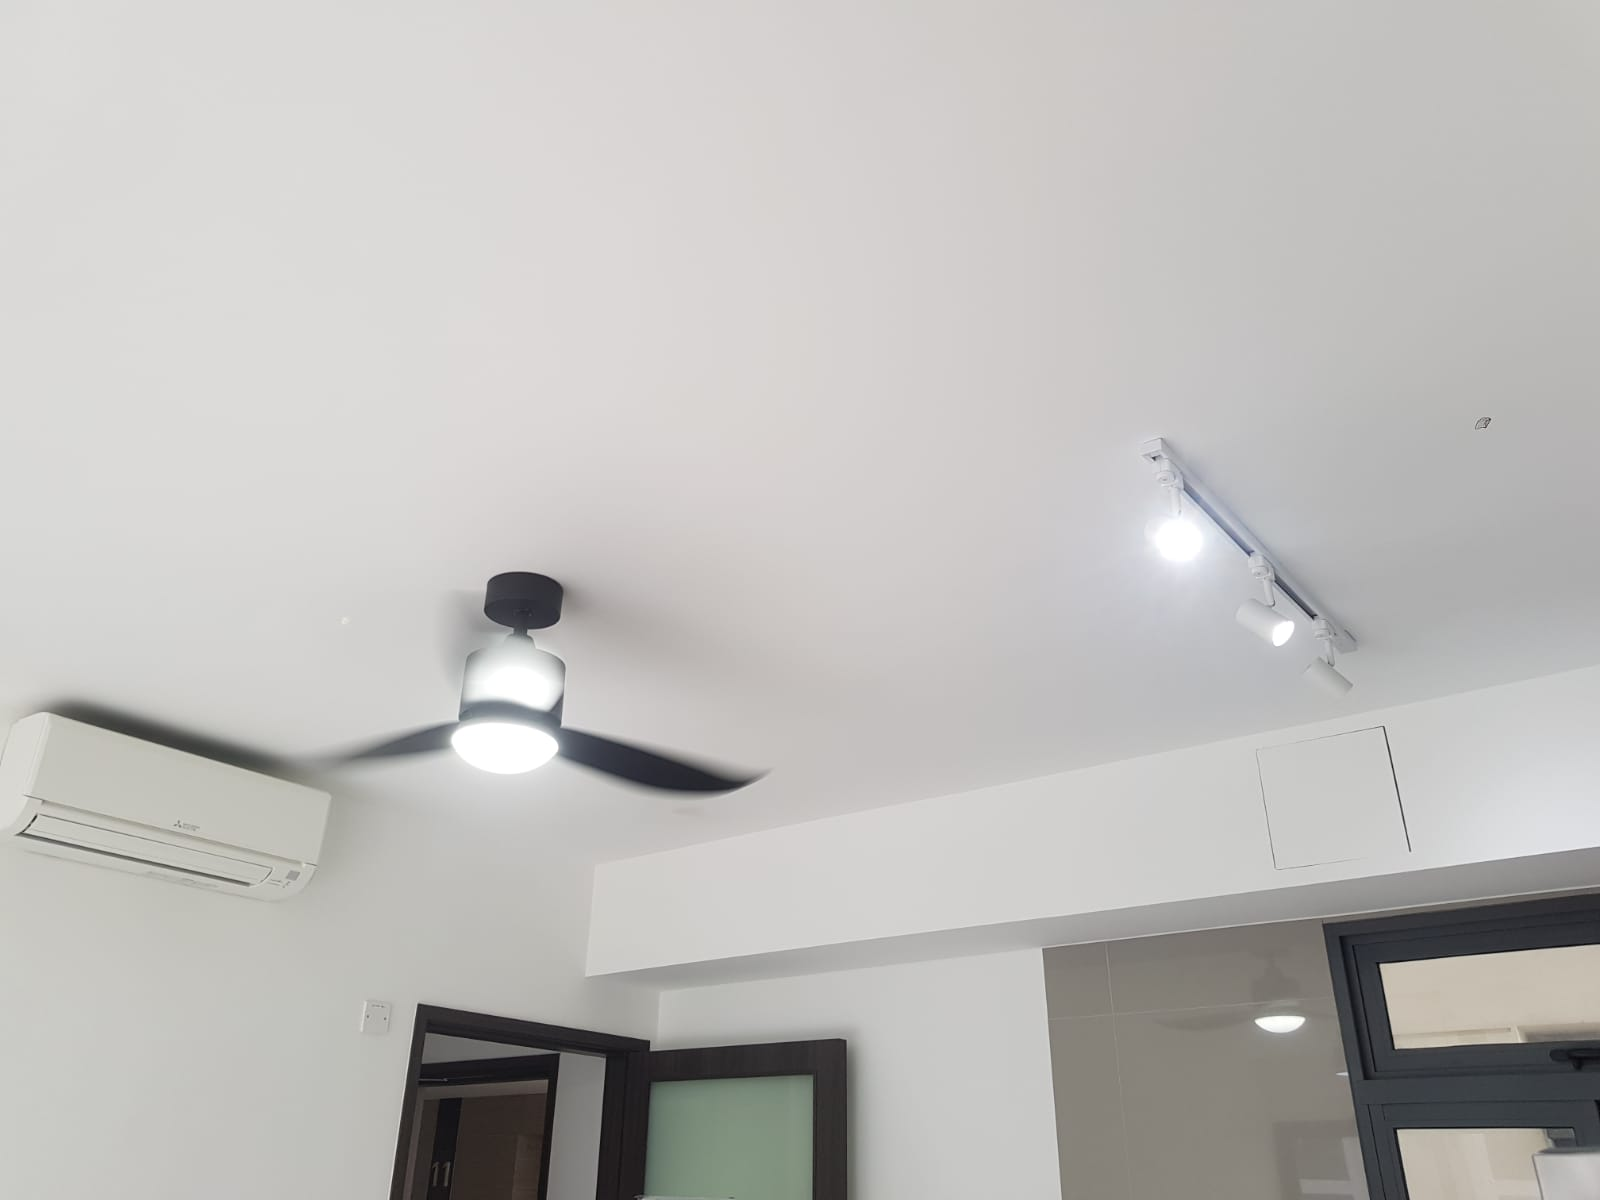 crestar-valueair-3-blade-black-ceiling-fan-sample-sembawang-lighting-house-16.jpg